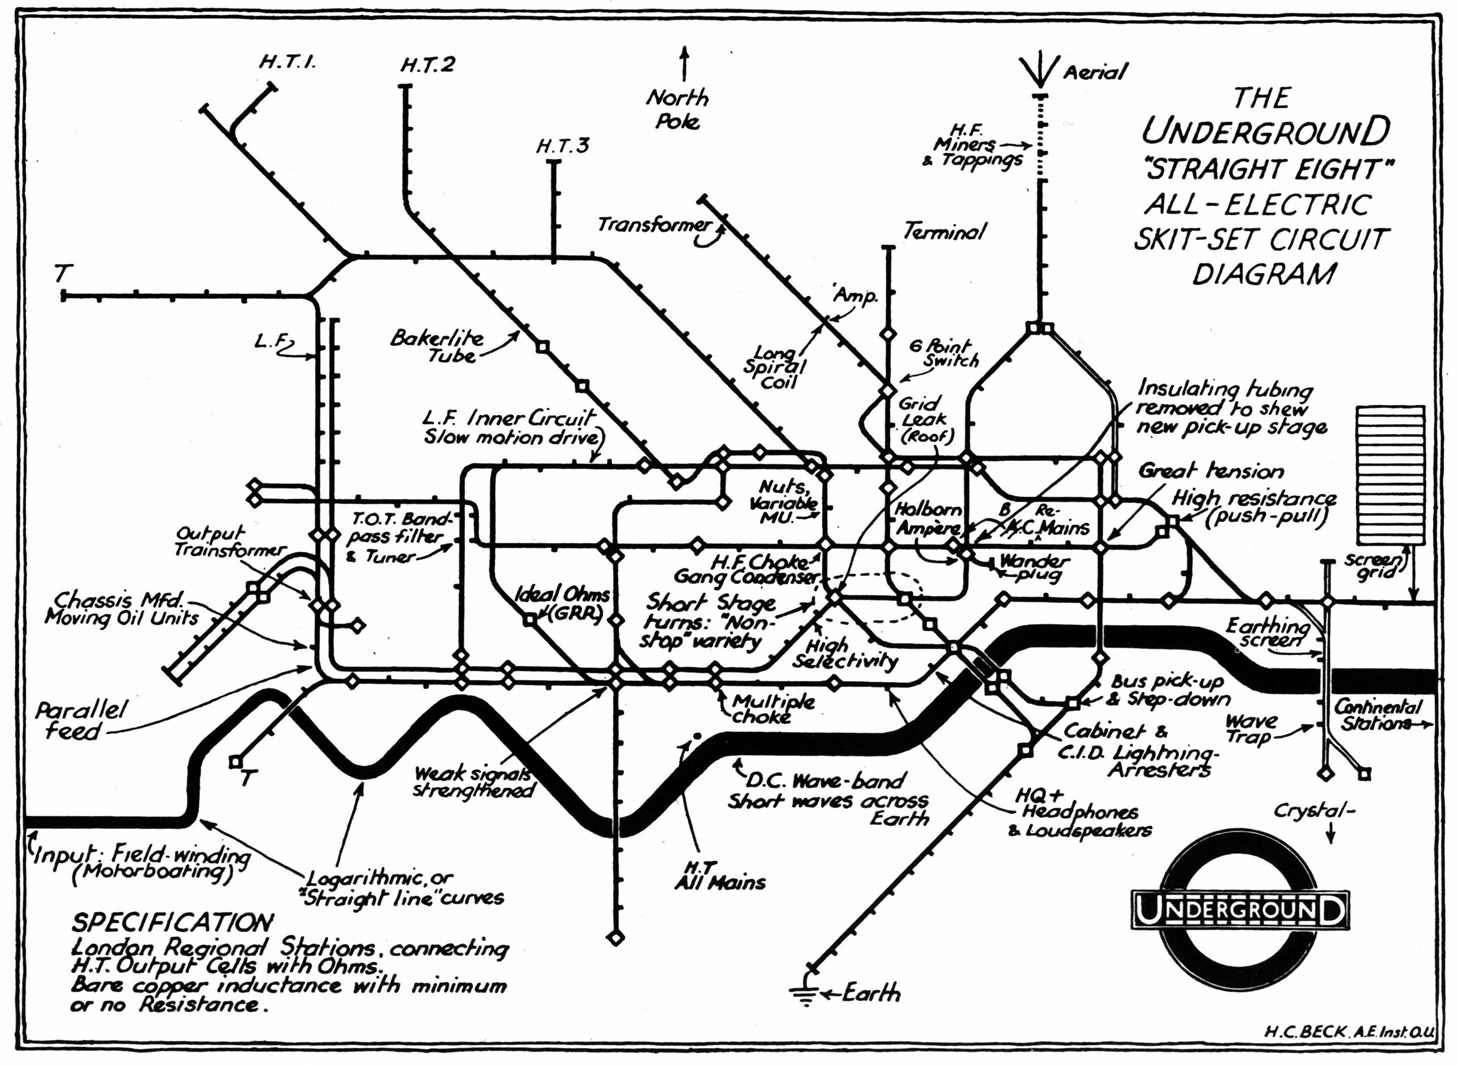 Henry Charles Beck Material Culture And The London Tube Map Of 1933 Pickit 3 Circuit Diagram 4 Underground Straight Eight All Electric Skit Set March Drawing In Train Omnibus Tram Staff Magazine